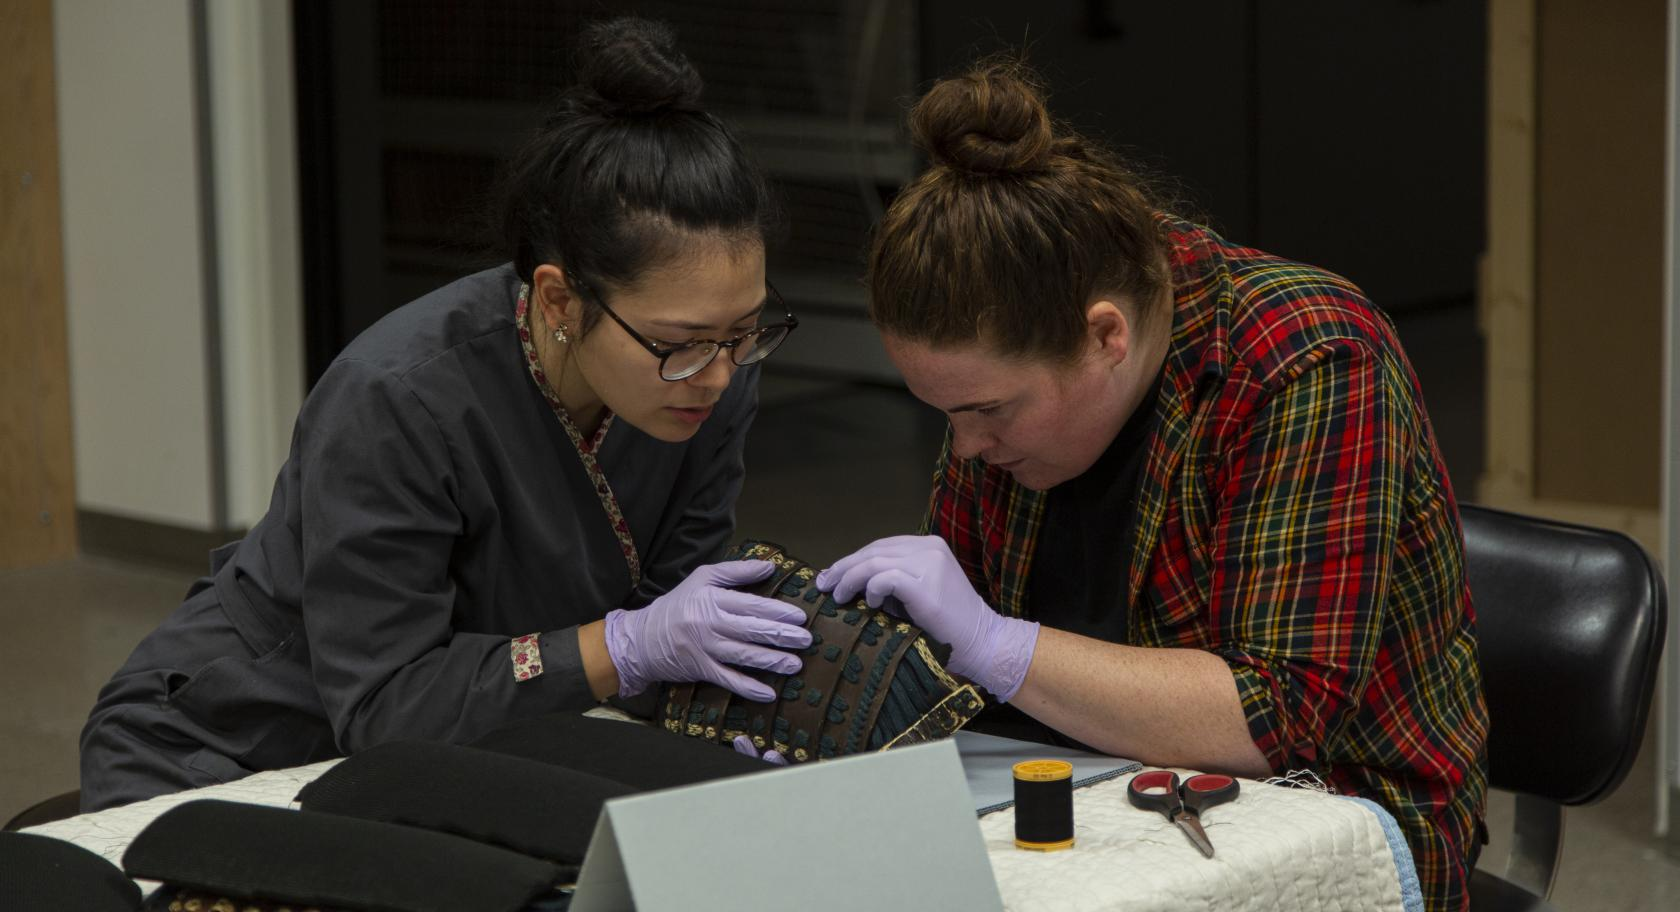 Stacey Kelly and Adelaide Ryder work together to safely attach Ethafoam supports to each panel on the Samurai Armor.